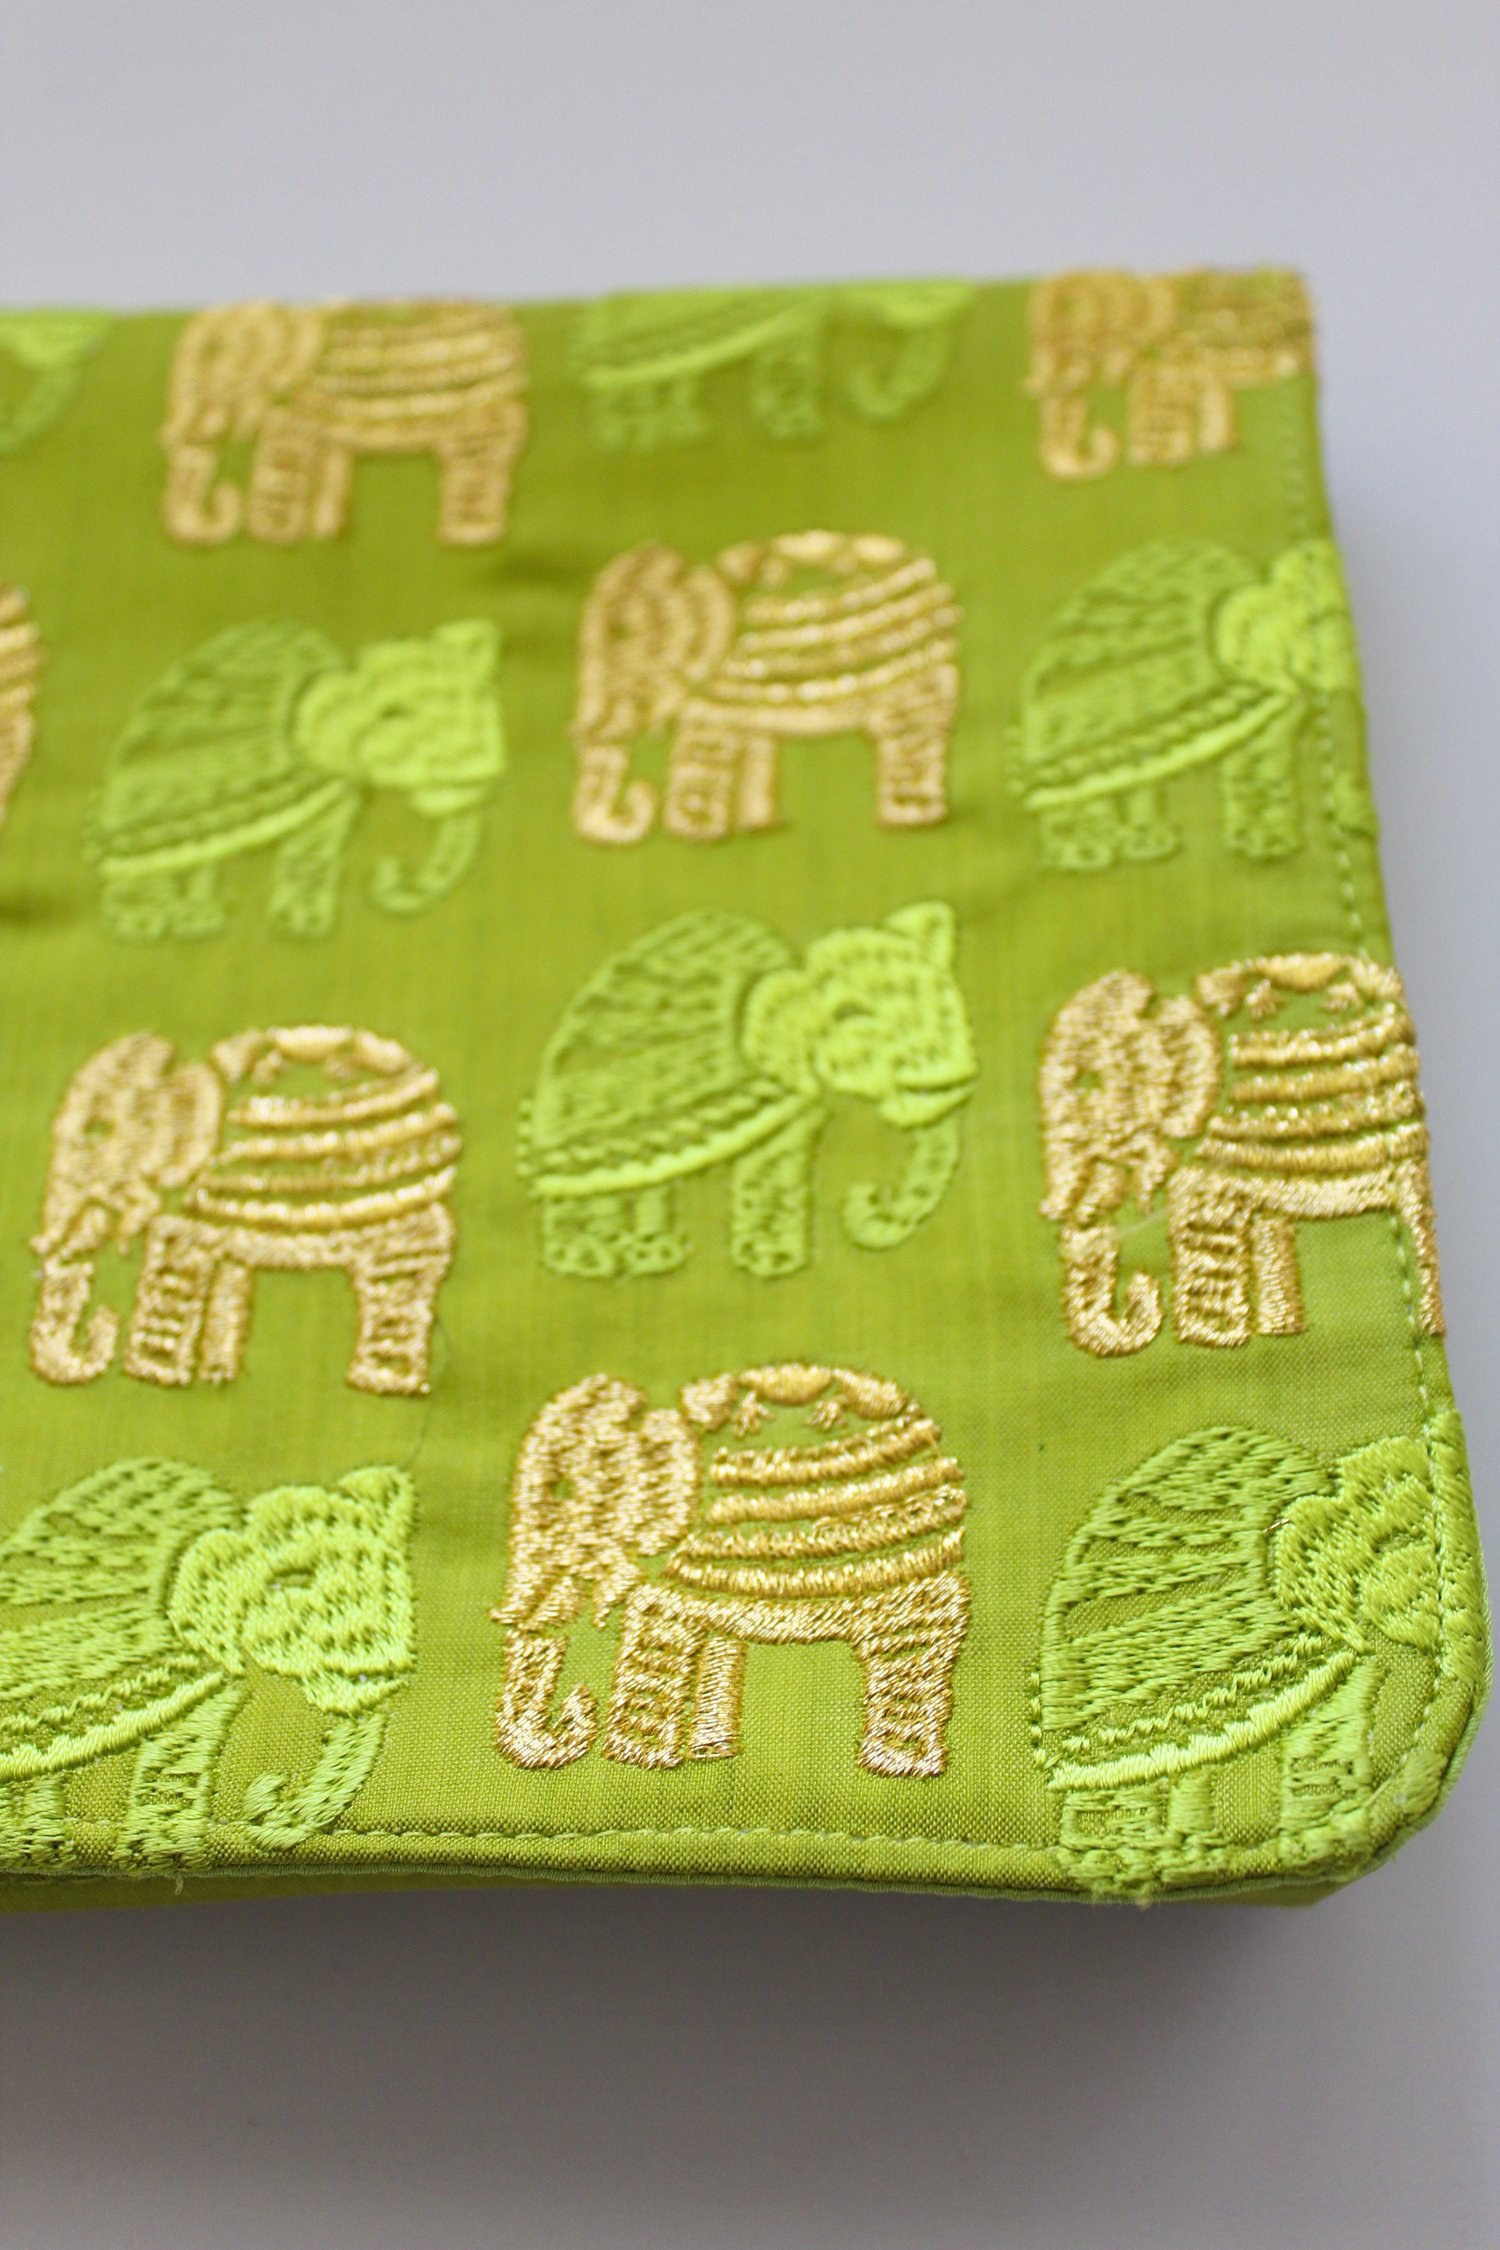 The Lime Green and Yellow Elephant Clutch.